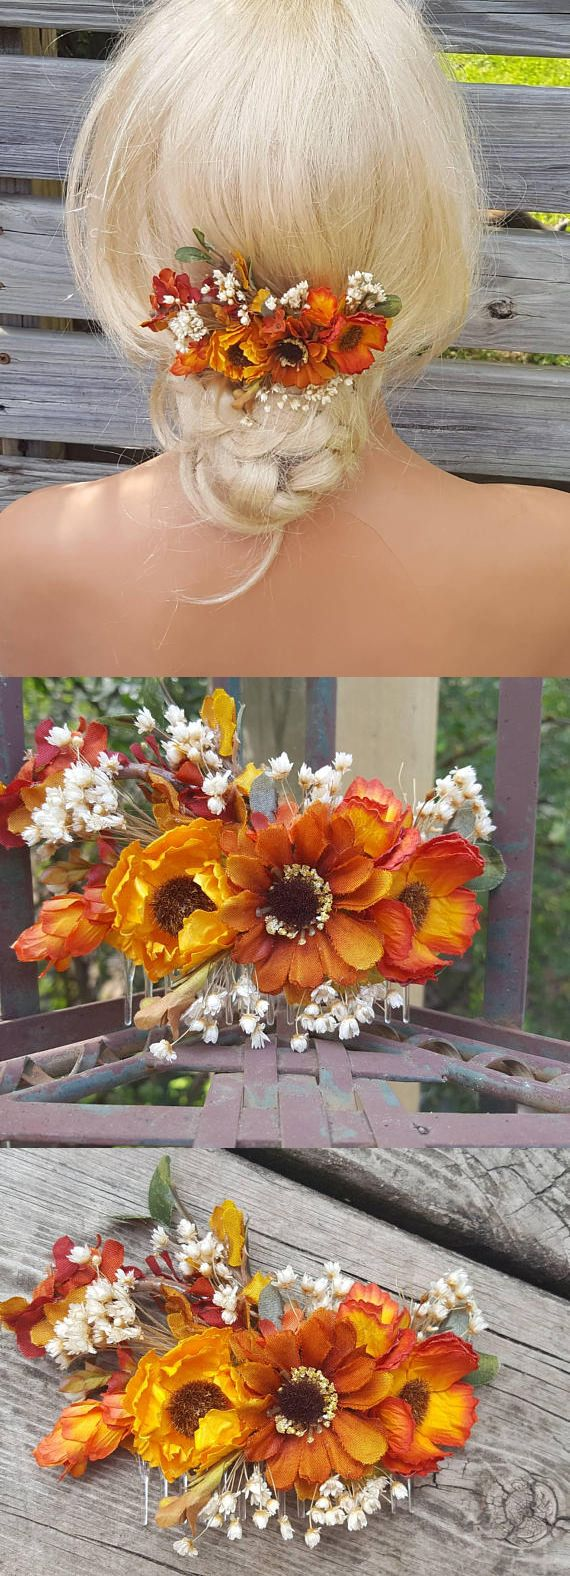 Fall Wedding Comb, Autumn Bridal Hair Comb, Thanksgiving Comb, Fall Bridal Comb, Outdoor Wedding, Rustic Fall Decor, Orange Yellow Flowers